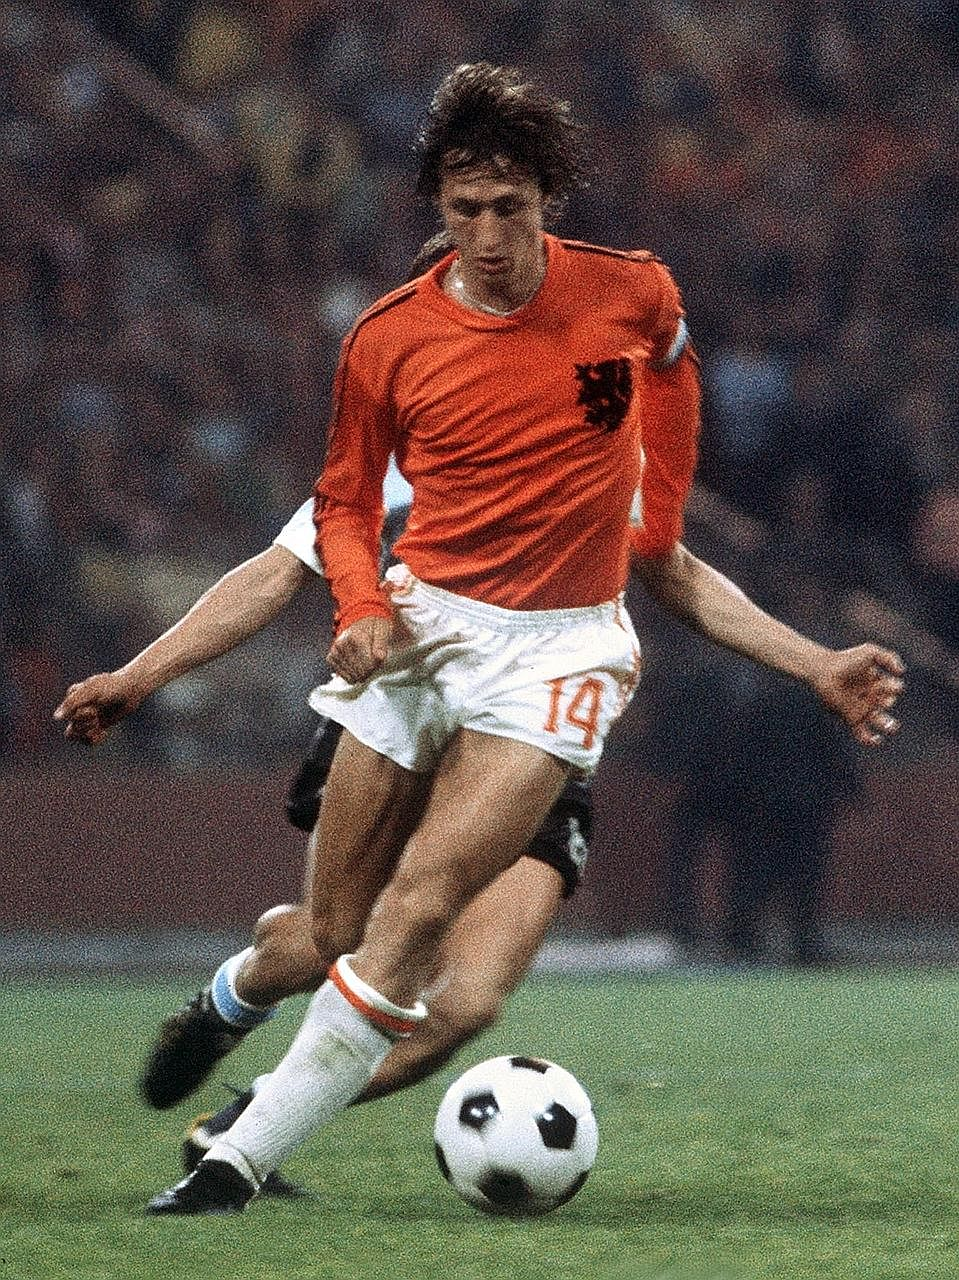 A 1974 photo showing the late Dutch forward Johan Cruyff controlling the ball under pressure from a West German player during the World Cup final in Munich which was won by the host nation.